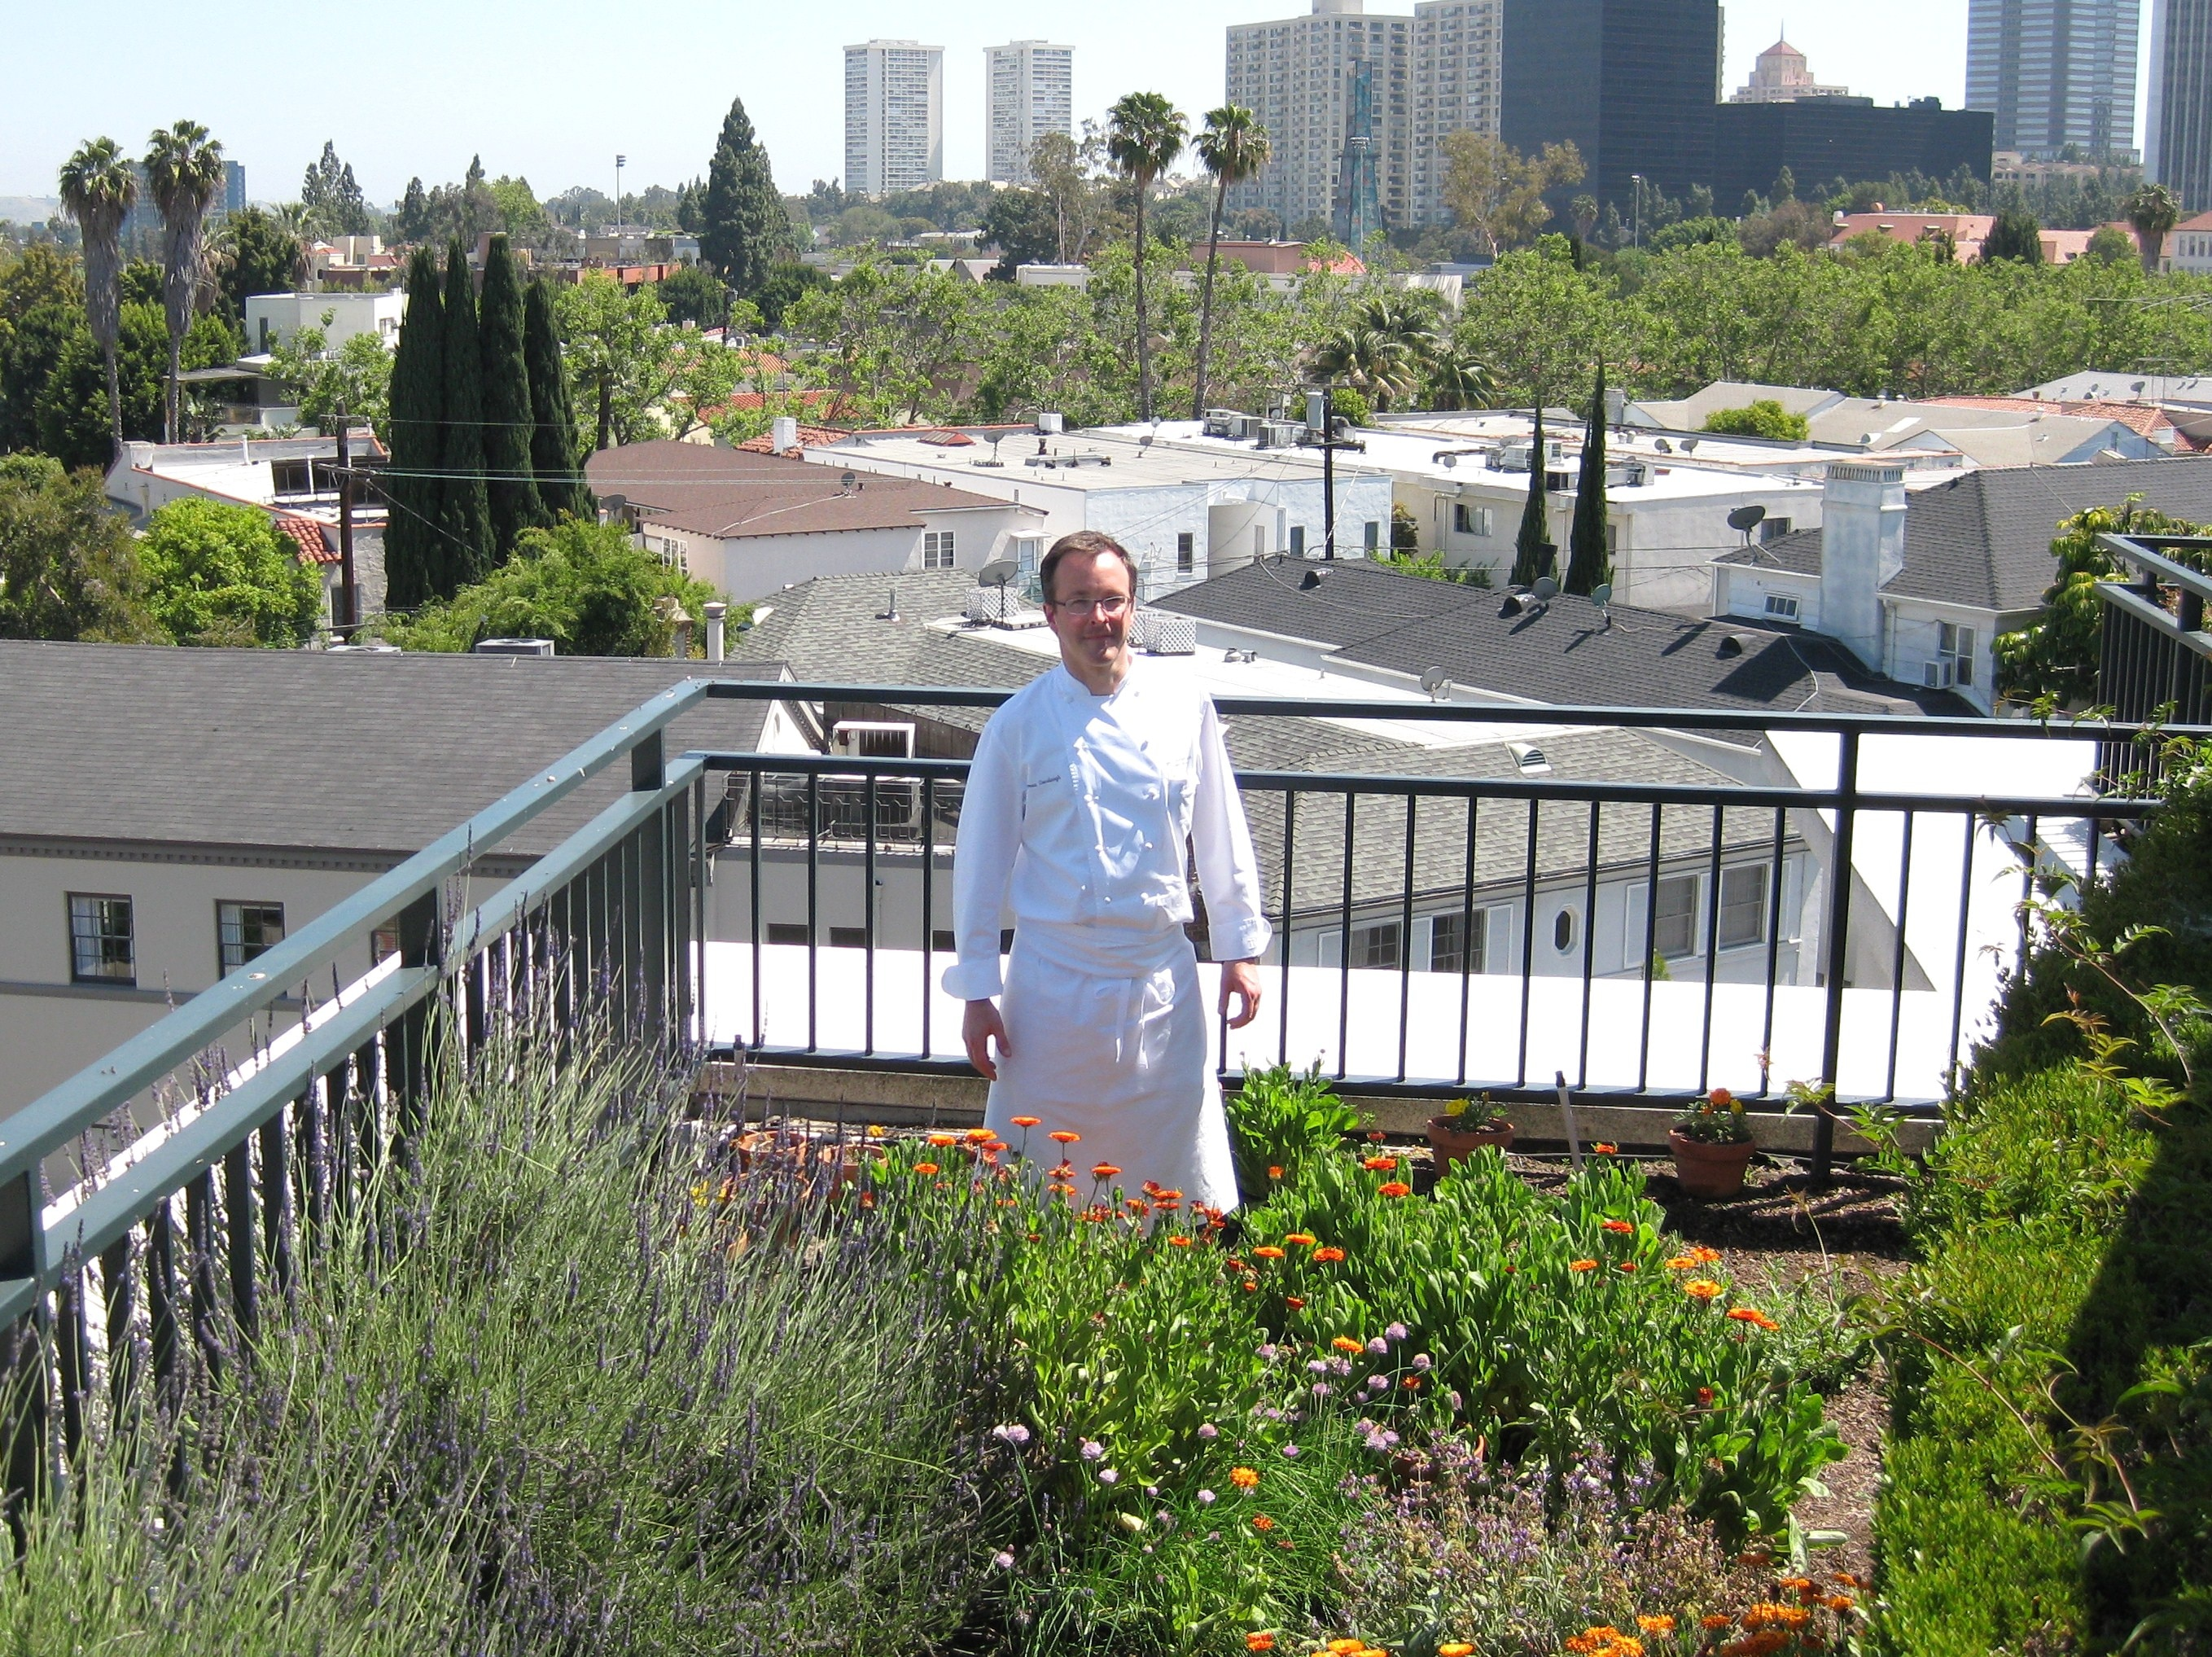 chef james overbaugh from the belvedere restaurant at the